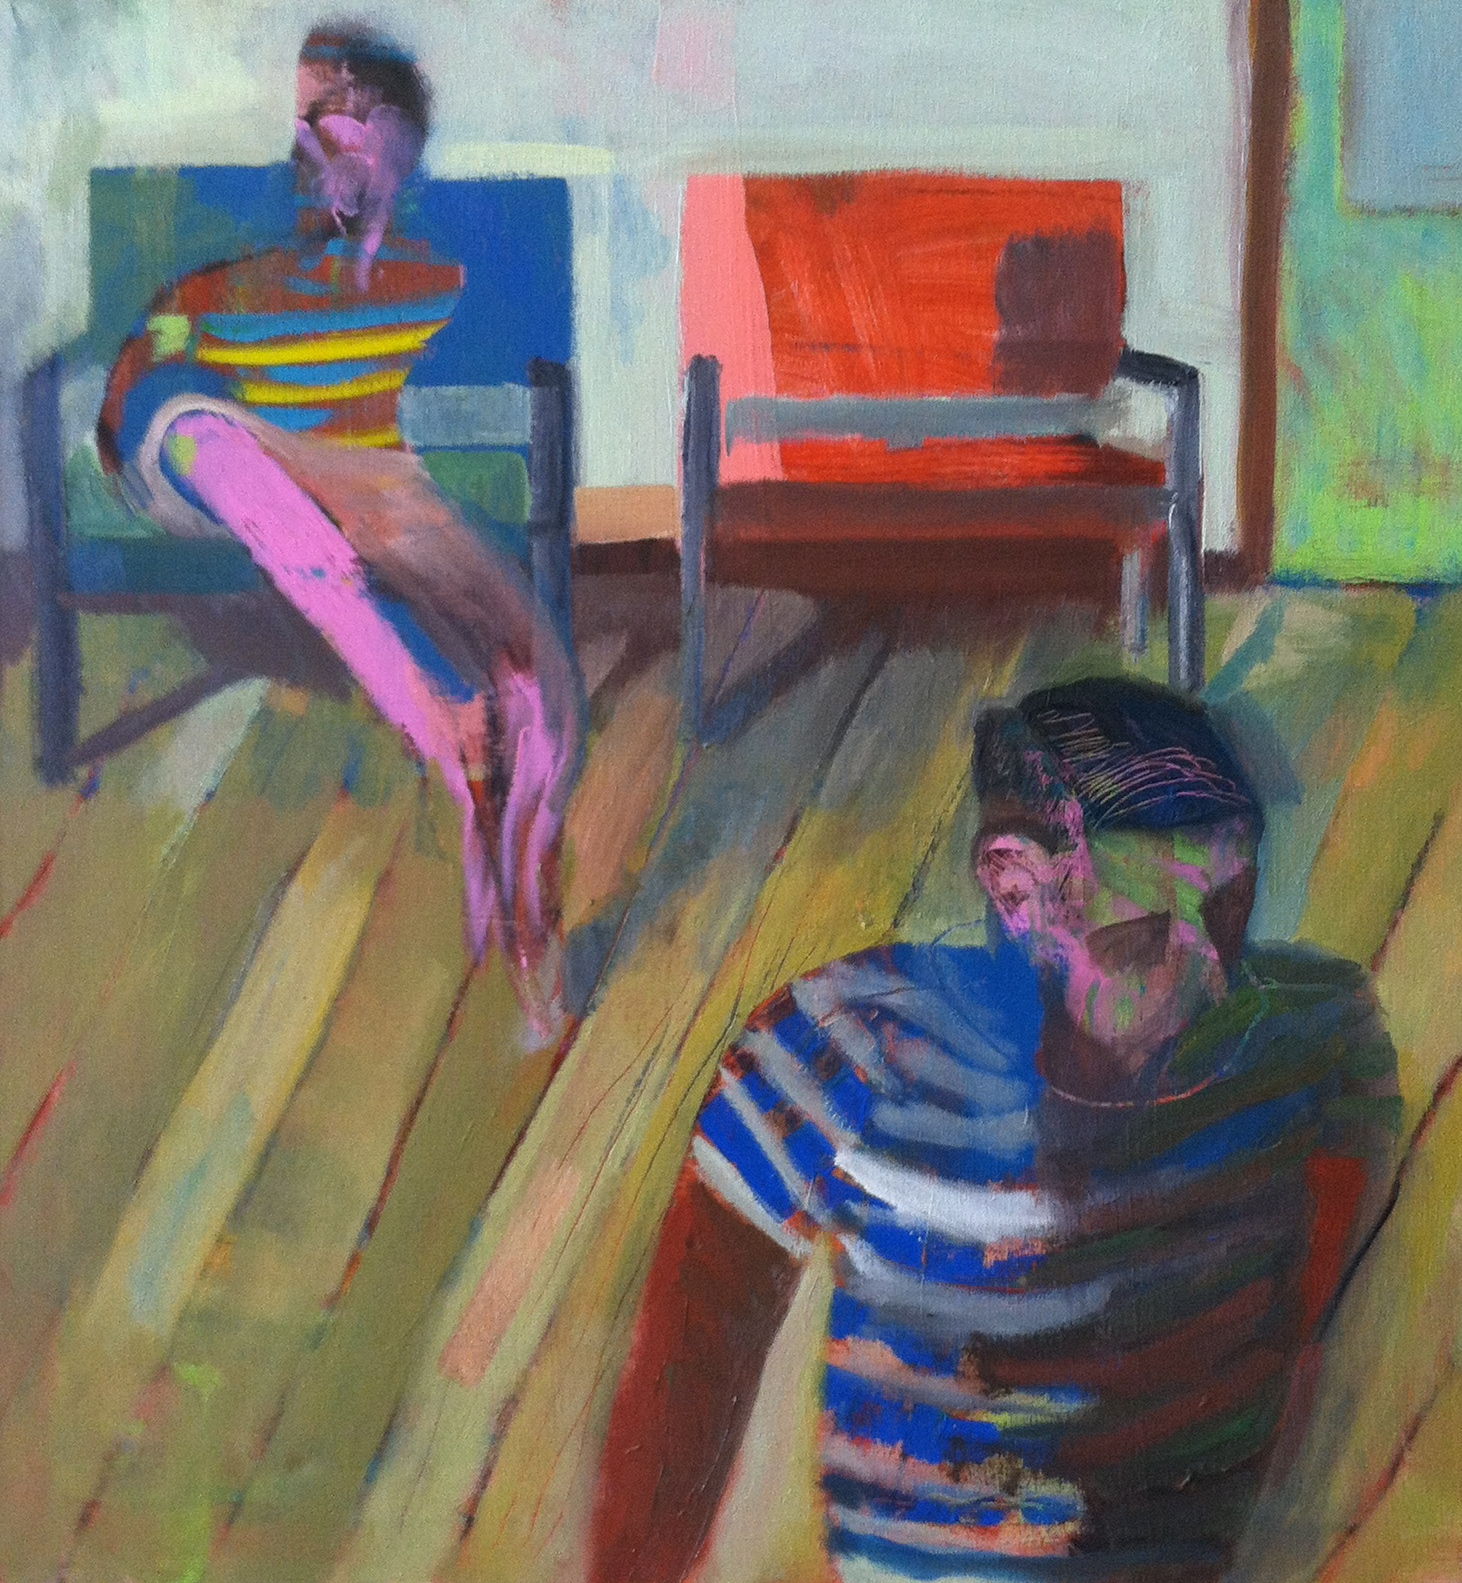 The room, acrylic and oil on canvas, 30x32 inches, 2014